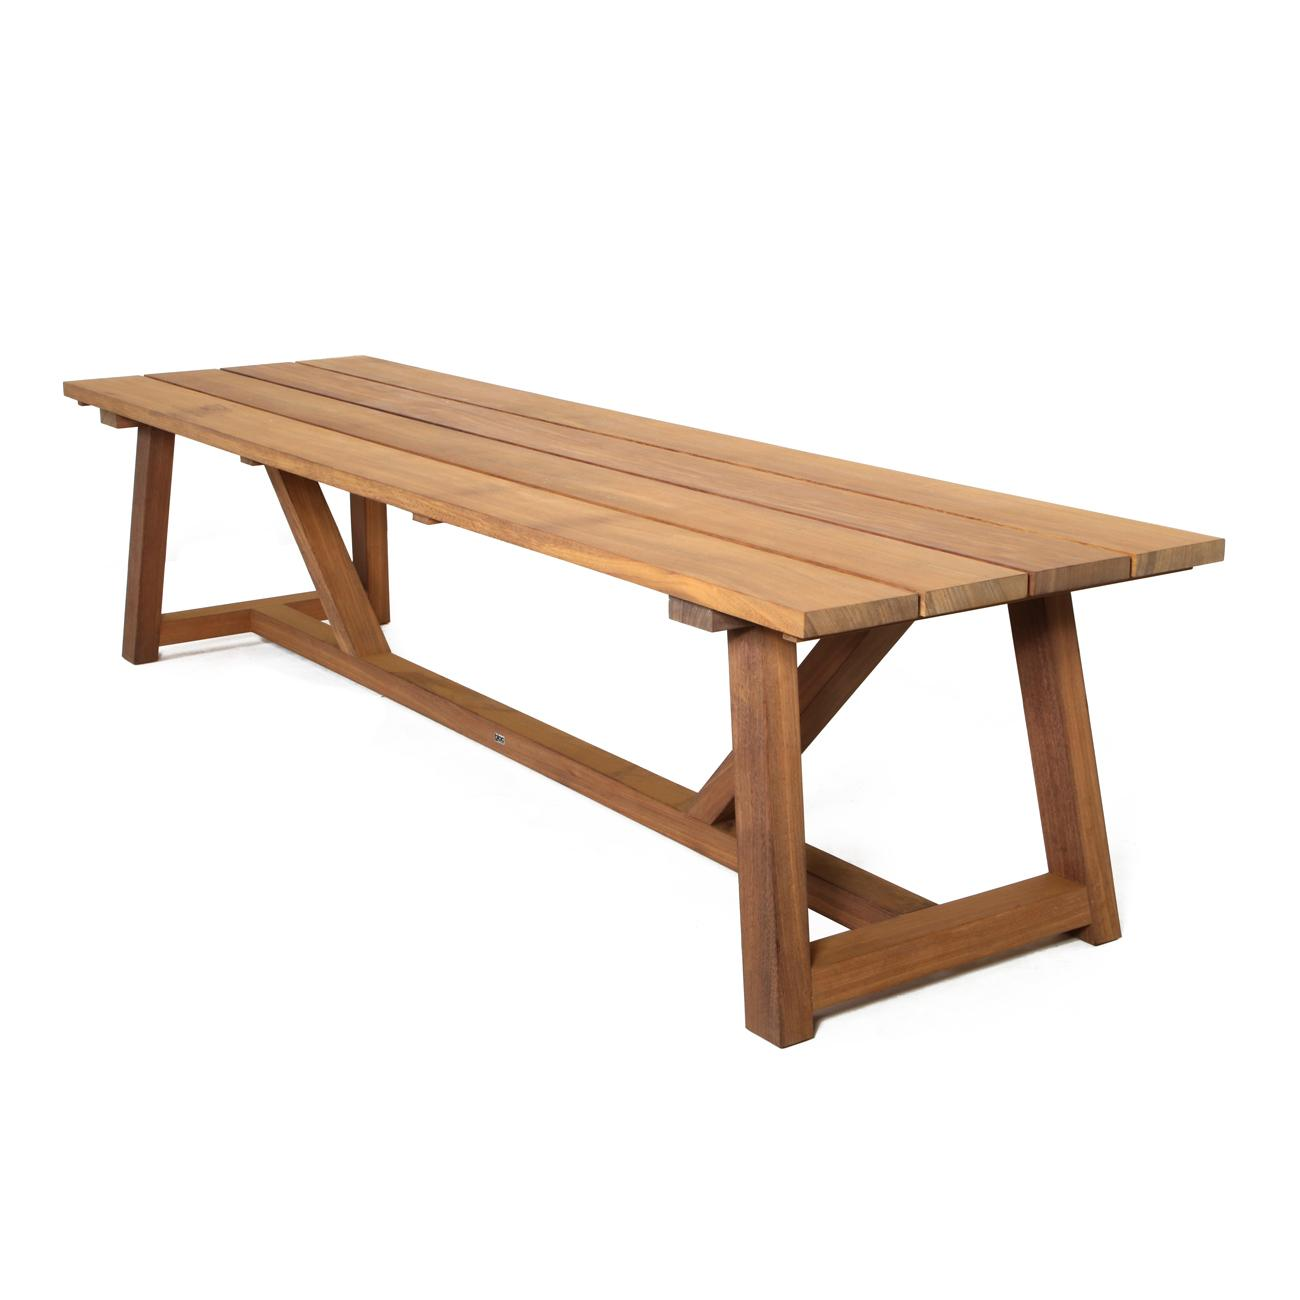 Outdoor Timber Table Mallorca Timber Table Bloc Outdoor